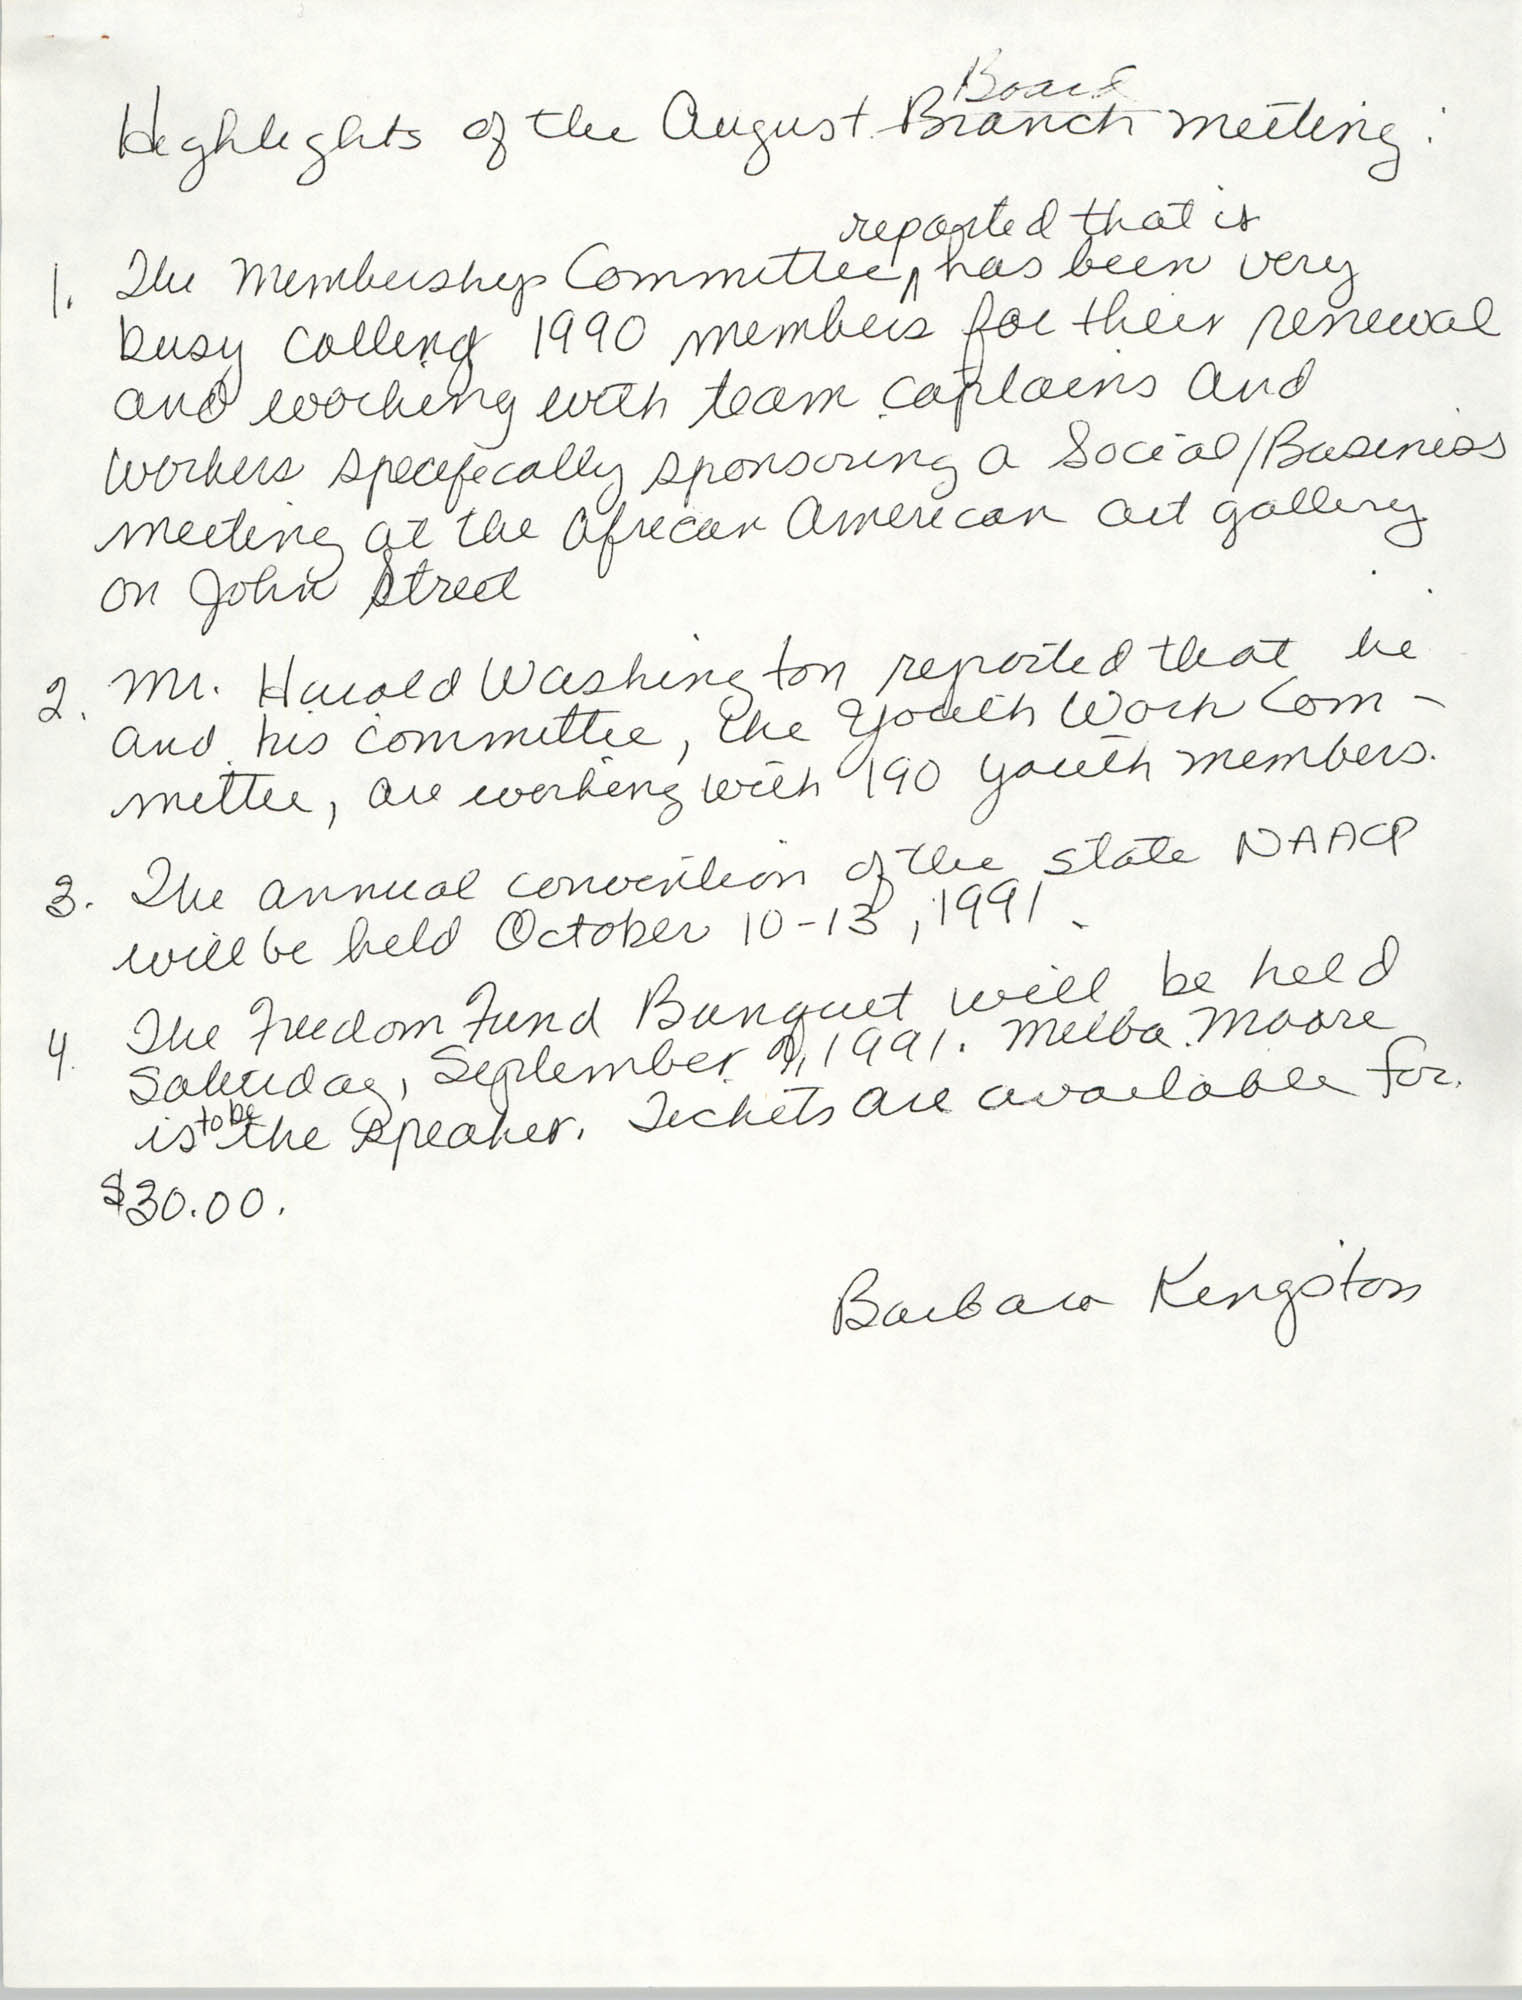 Highlights of the Charleston Branch of the NAACP Membership Committee Meeting, August 1991